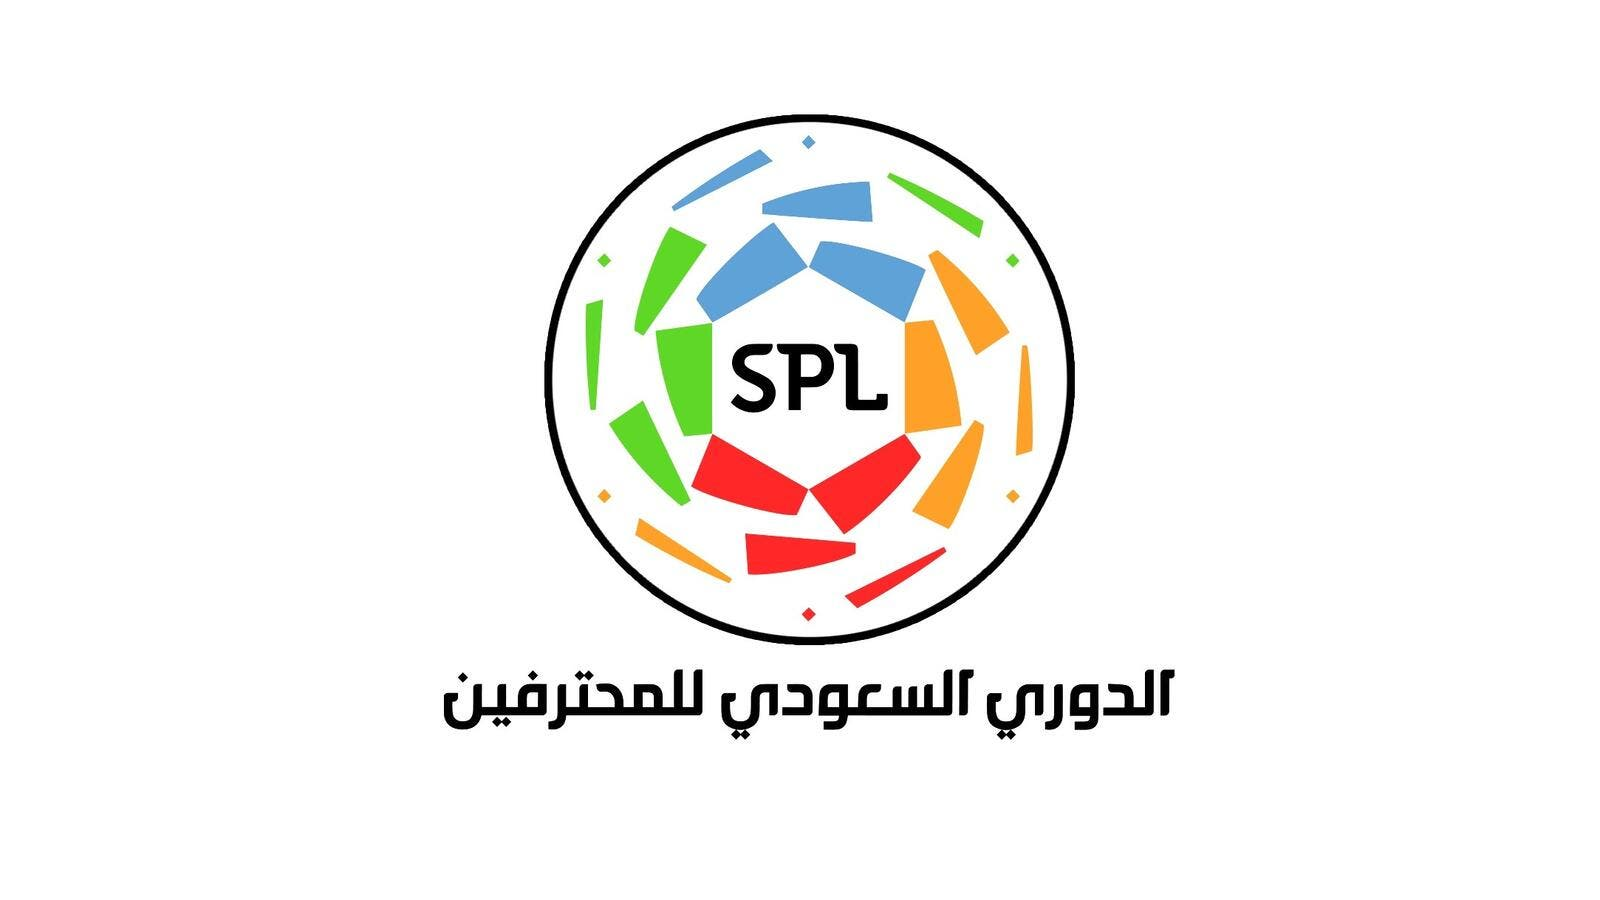 The Saudi Pro League logo